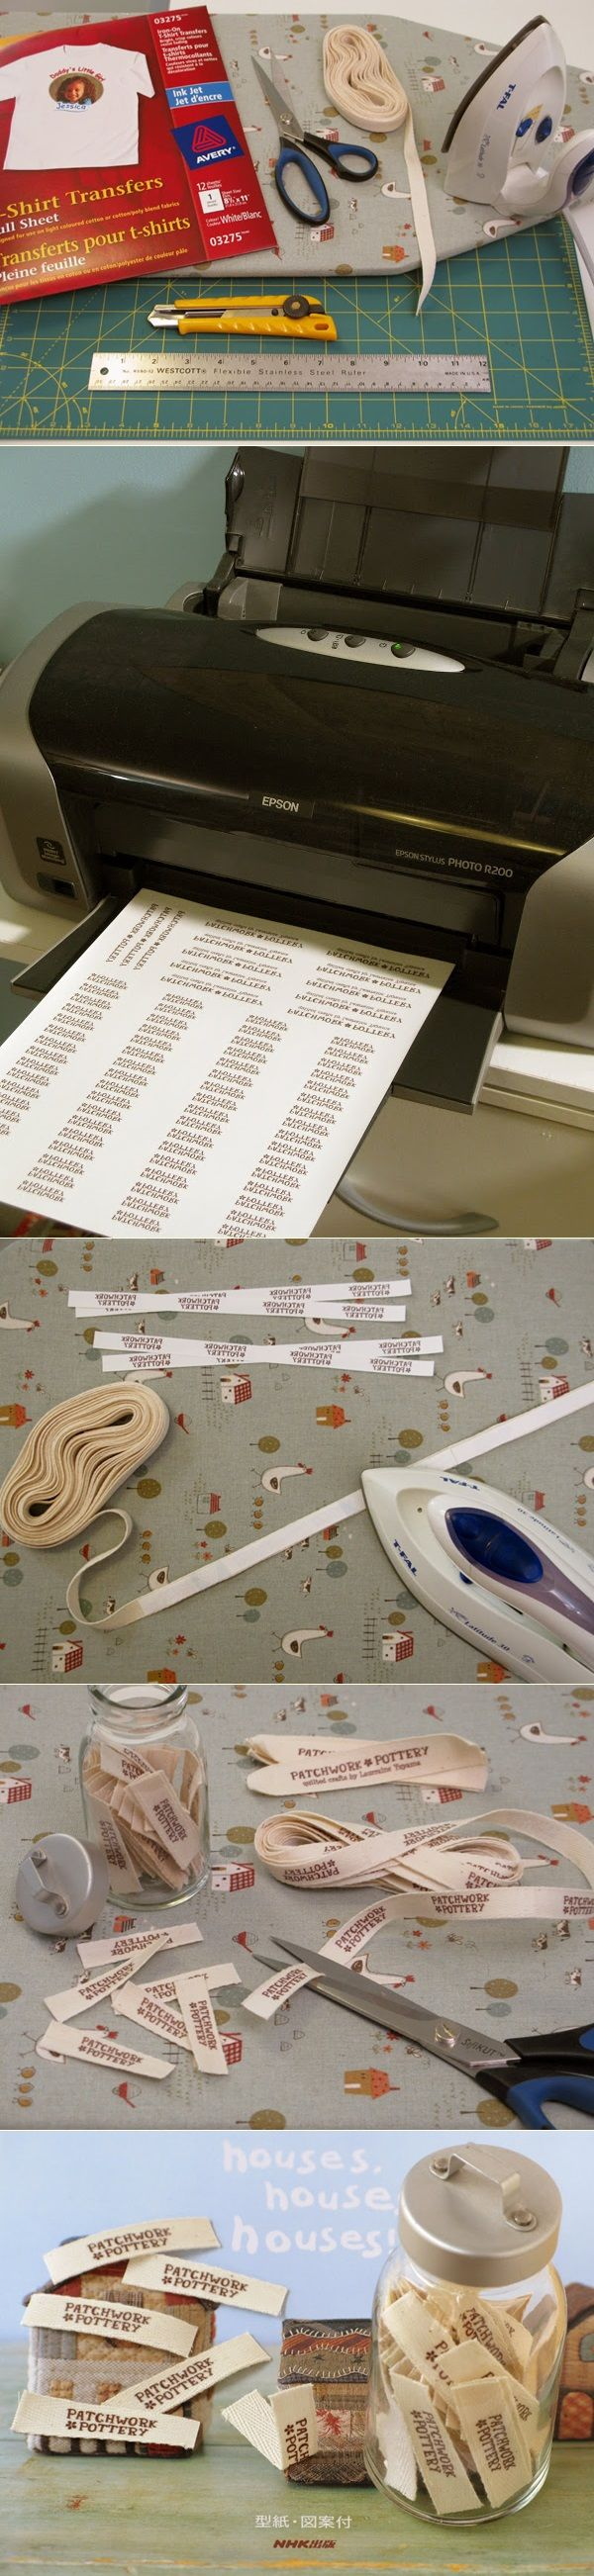 DIY Fabric Labels  #diy #crafting #fabric_labels